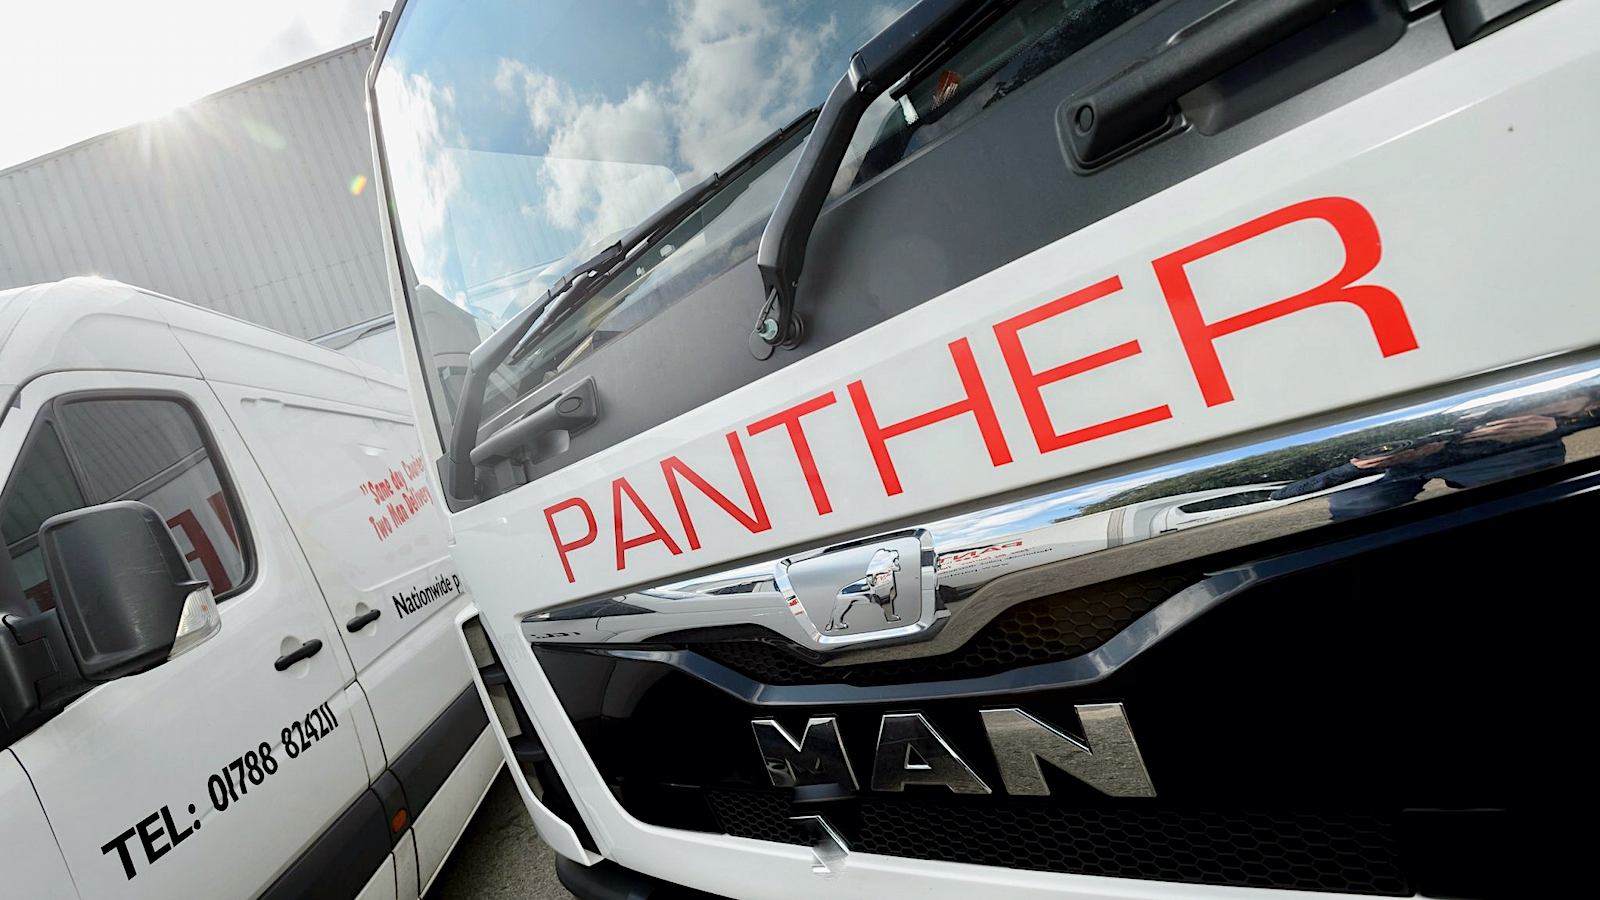 Delivery vehicles of Panther Logistics seen from the front. AIT Worldwide acquired Panther